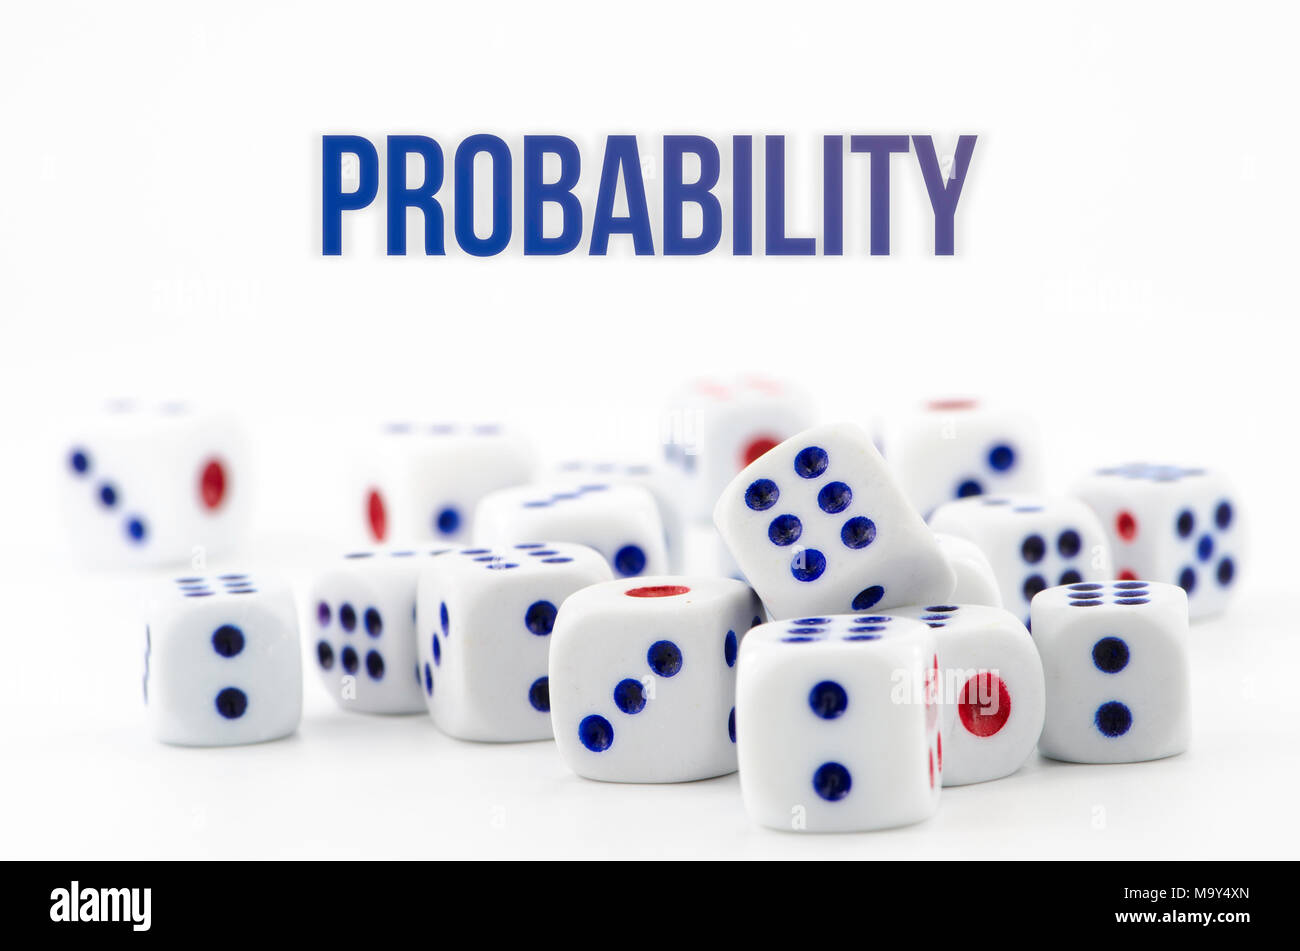 Probability Dice Chances Game Business